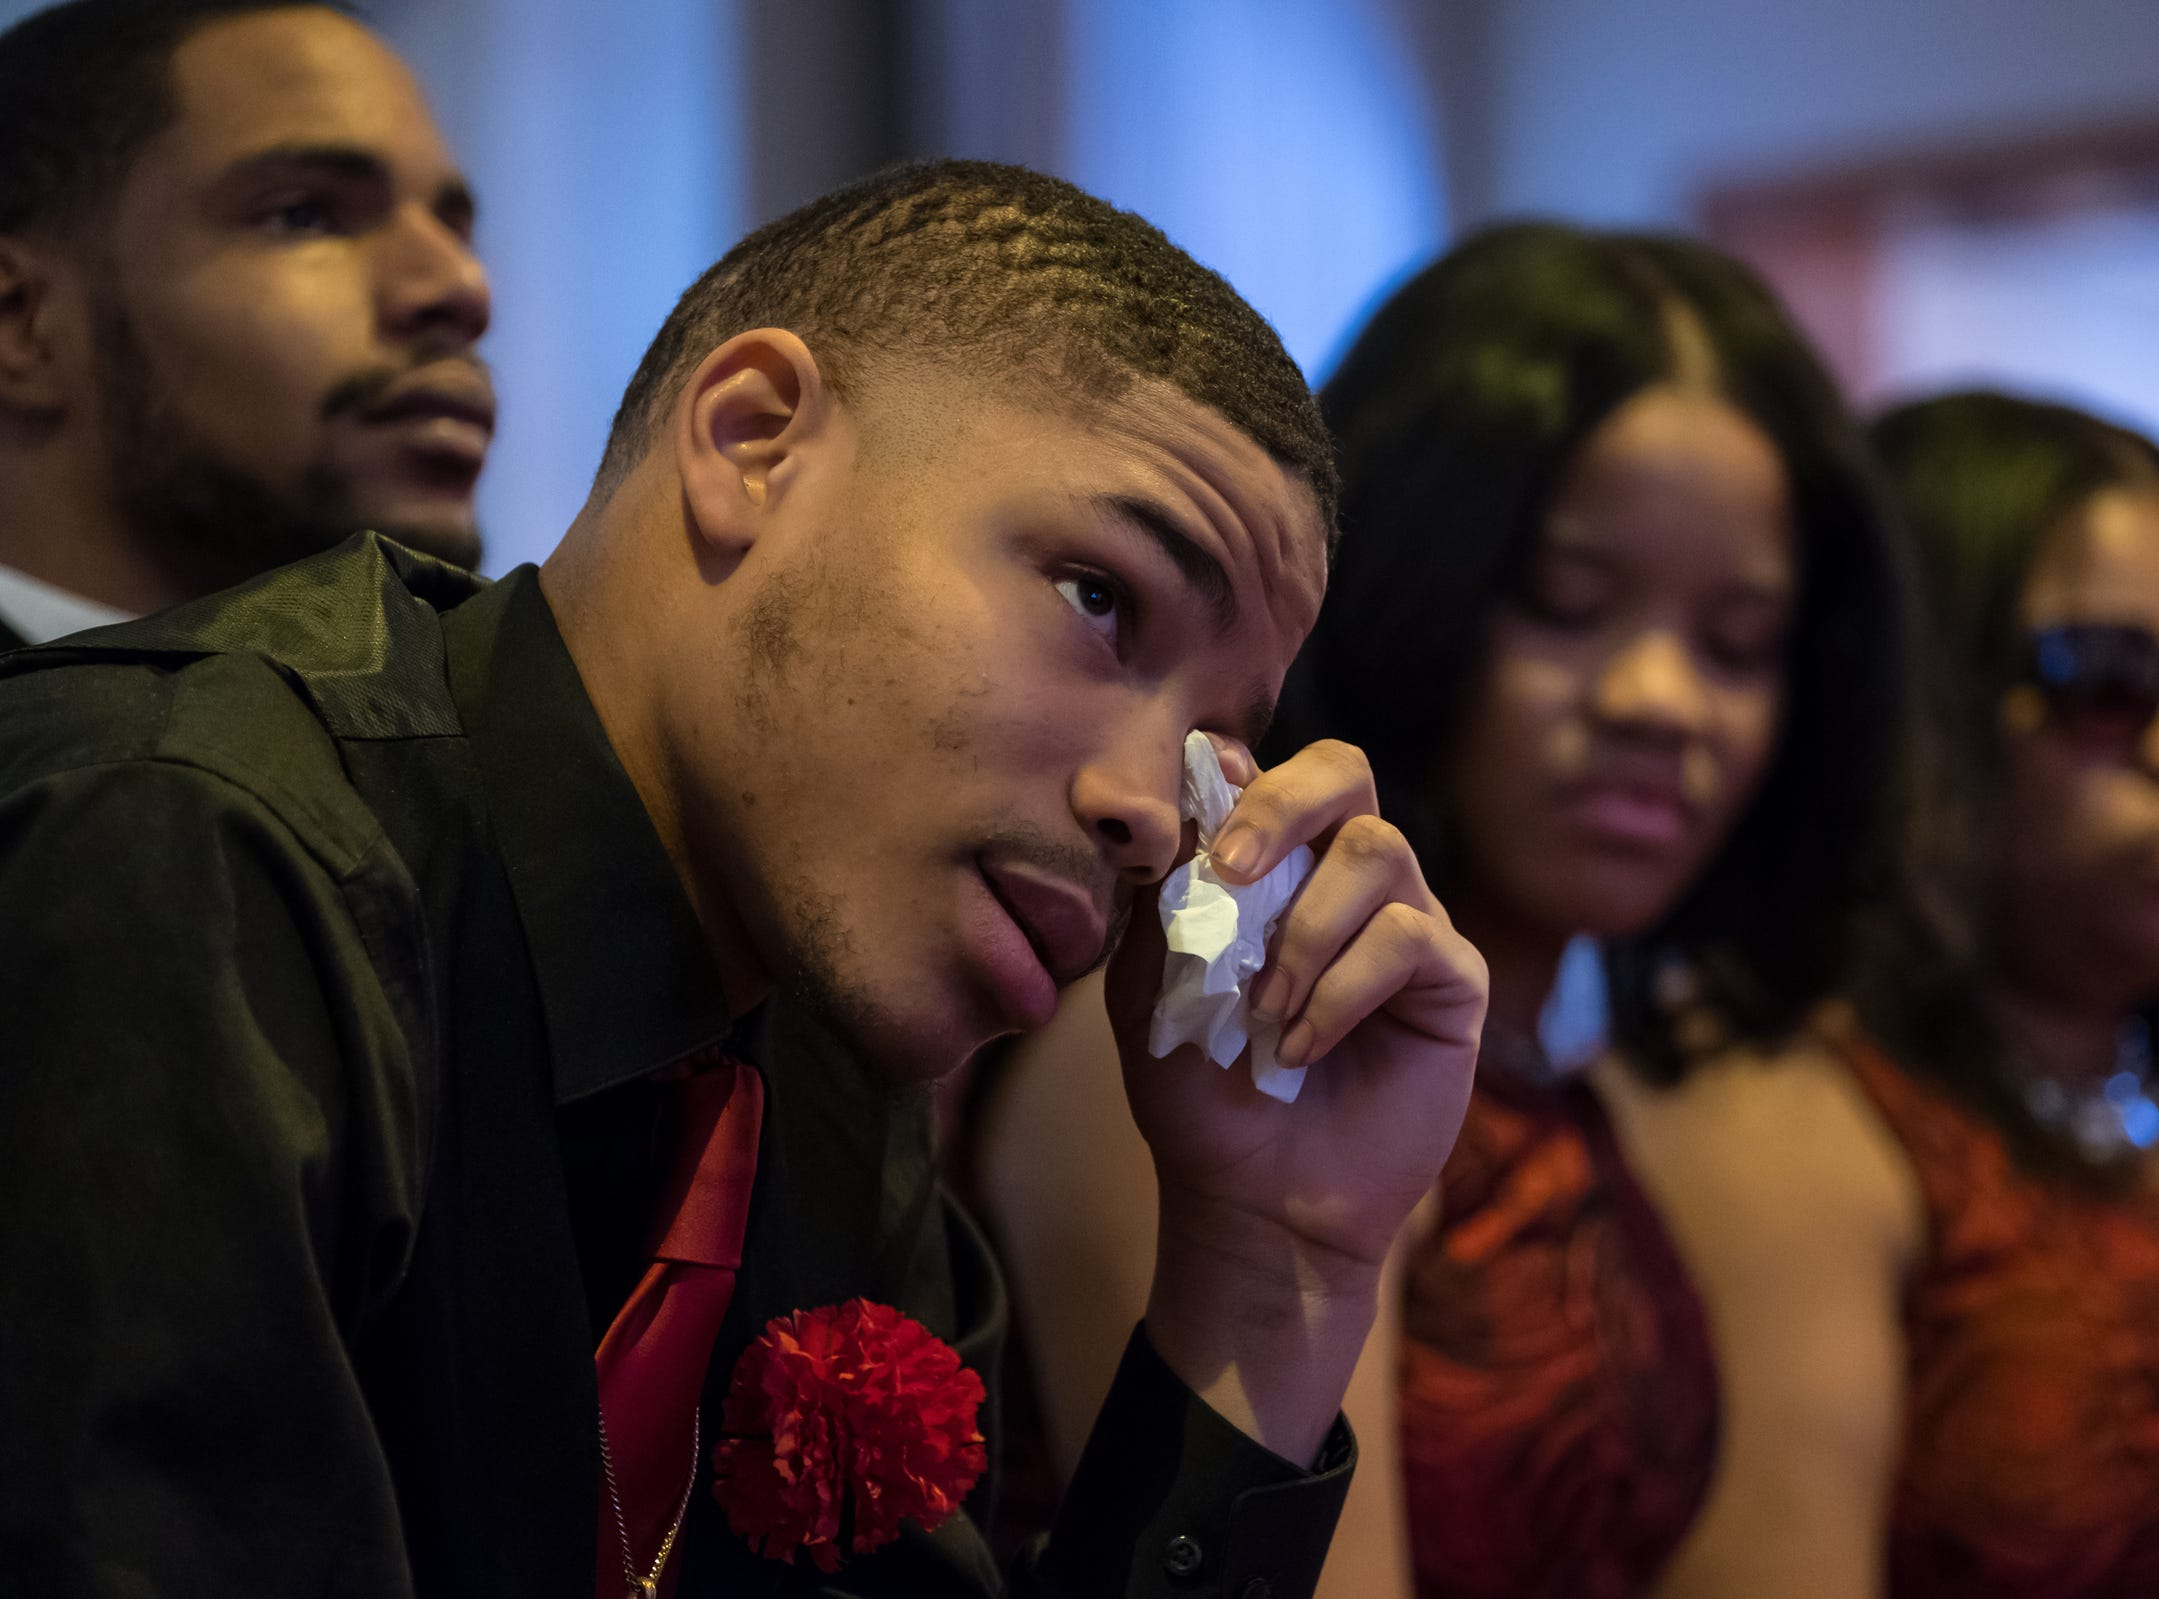 Branderian Barker of Detroit sheds a tear for his father the late Rudy Barker during his funeral at Hutchison Funeral Home in Detroit on Monday, January 21, 2019. Barker was known for his impressions of late civil rights leader Martin Luther King Jr. and was buried on the national holiday honoring his hero.